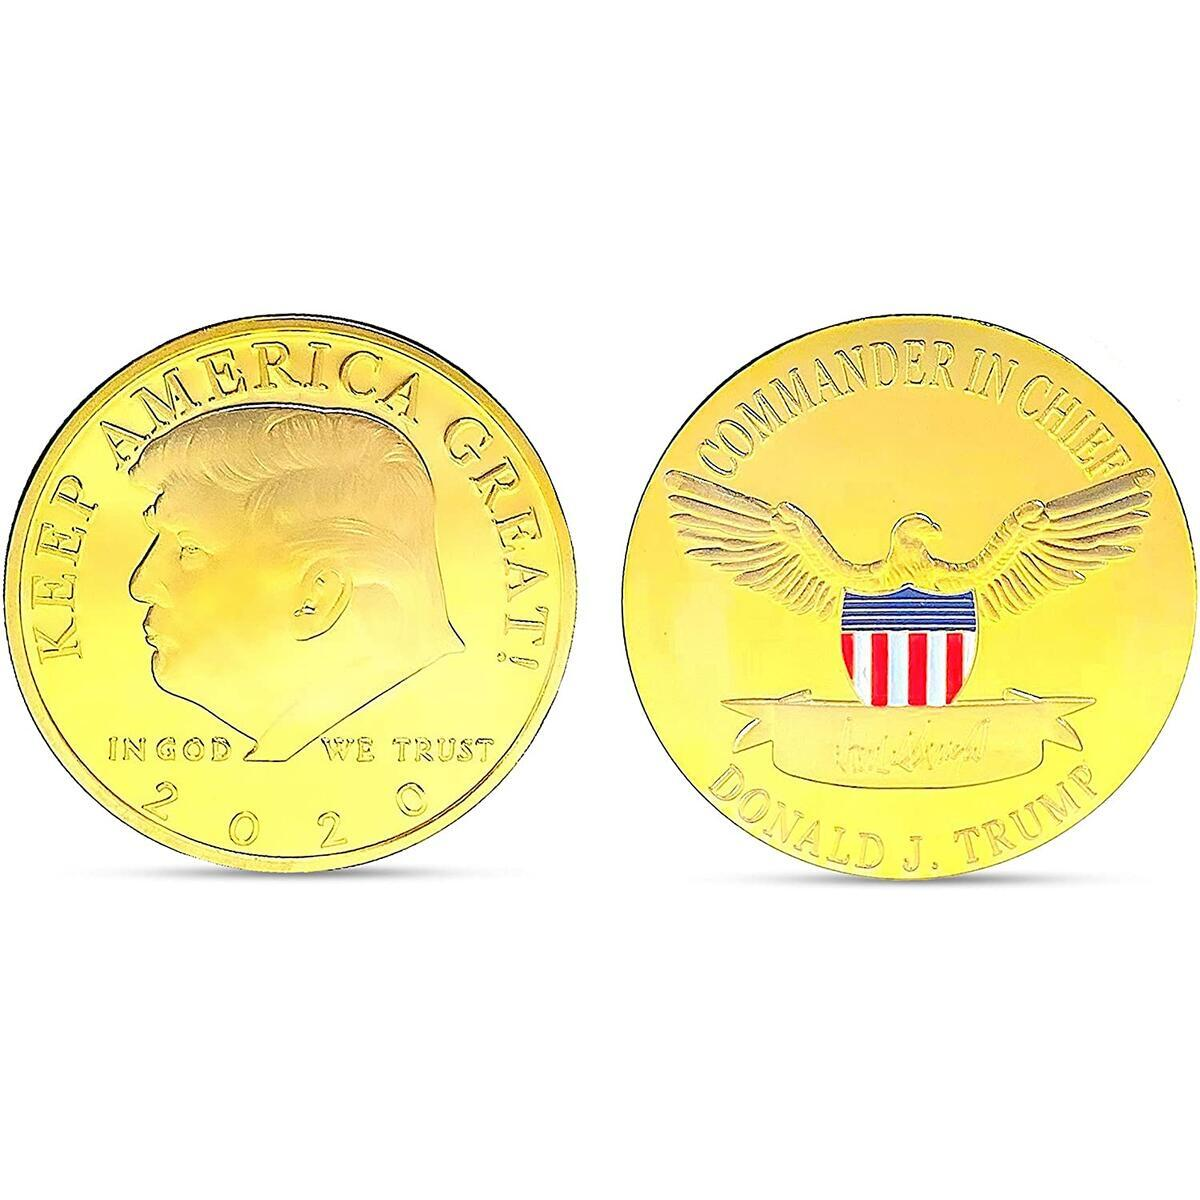 Trump 2020, Trump Coin, Gold, Coins, Collectible Coin, President Donald Trump, Trump Gift, Presidential Coin, Trump